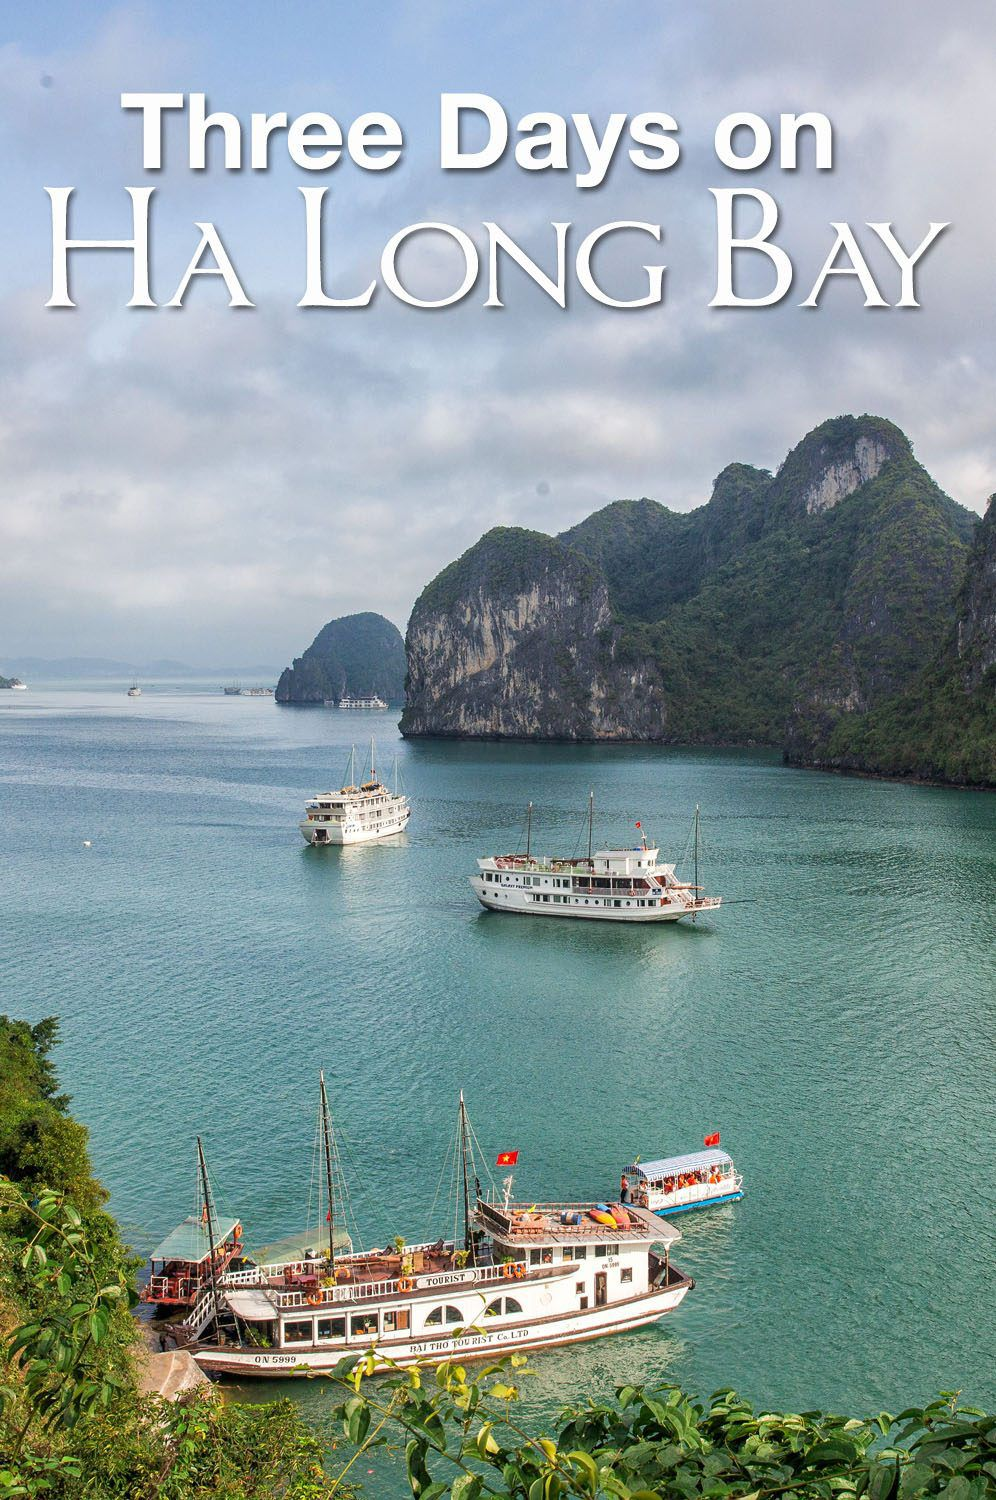 Three Days on Ha Long Bay